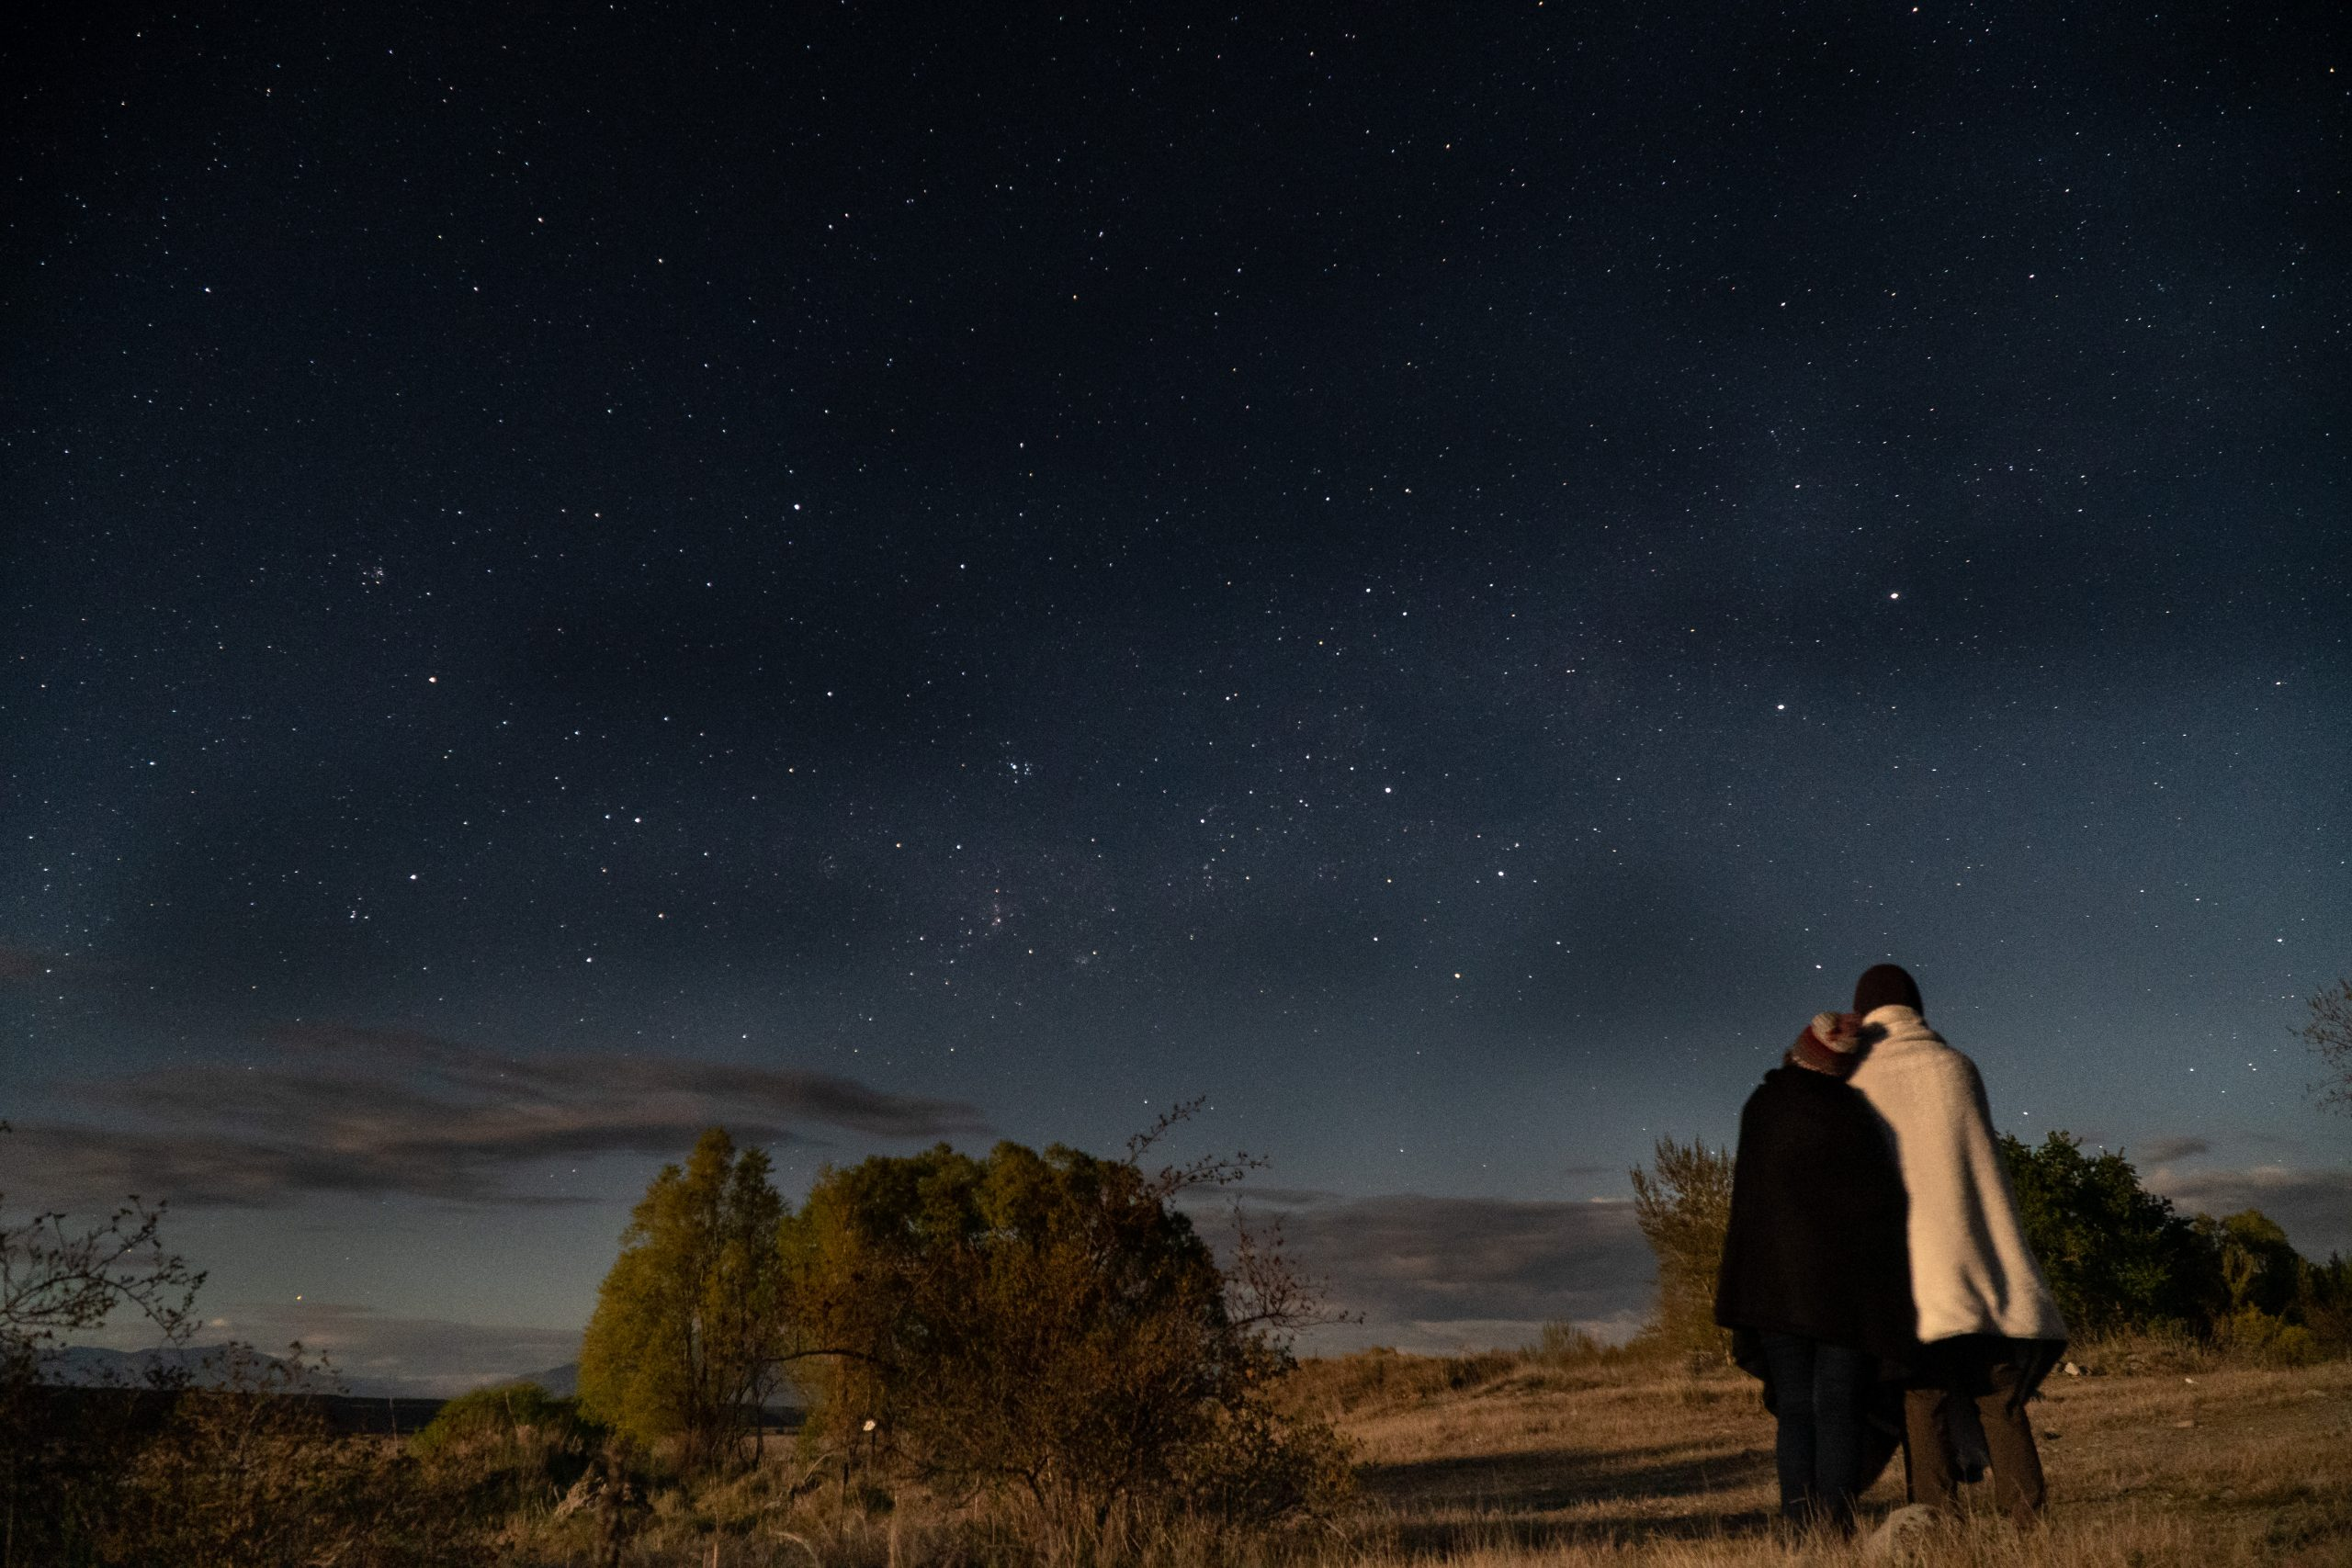 Couple stargazing in Aoraki Mckenzie Dark Sky Reserve in New Zealand